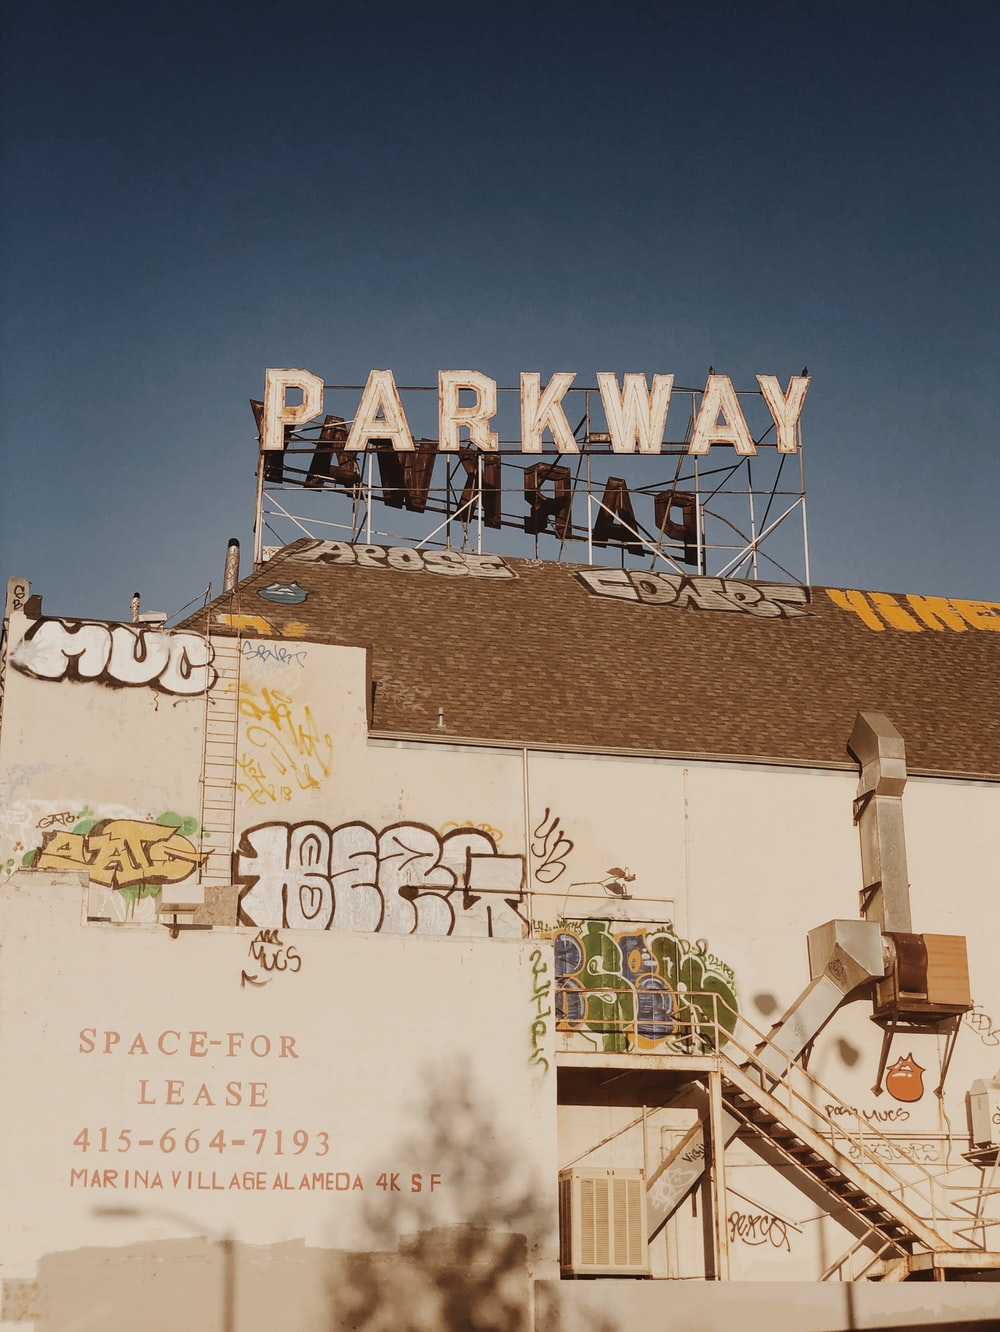 Parkway signage